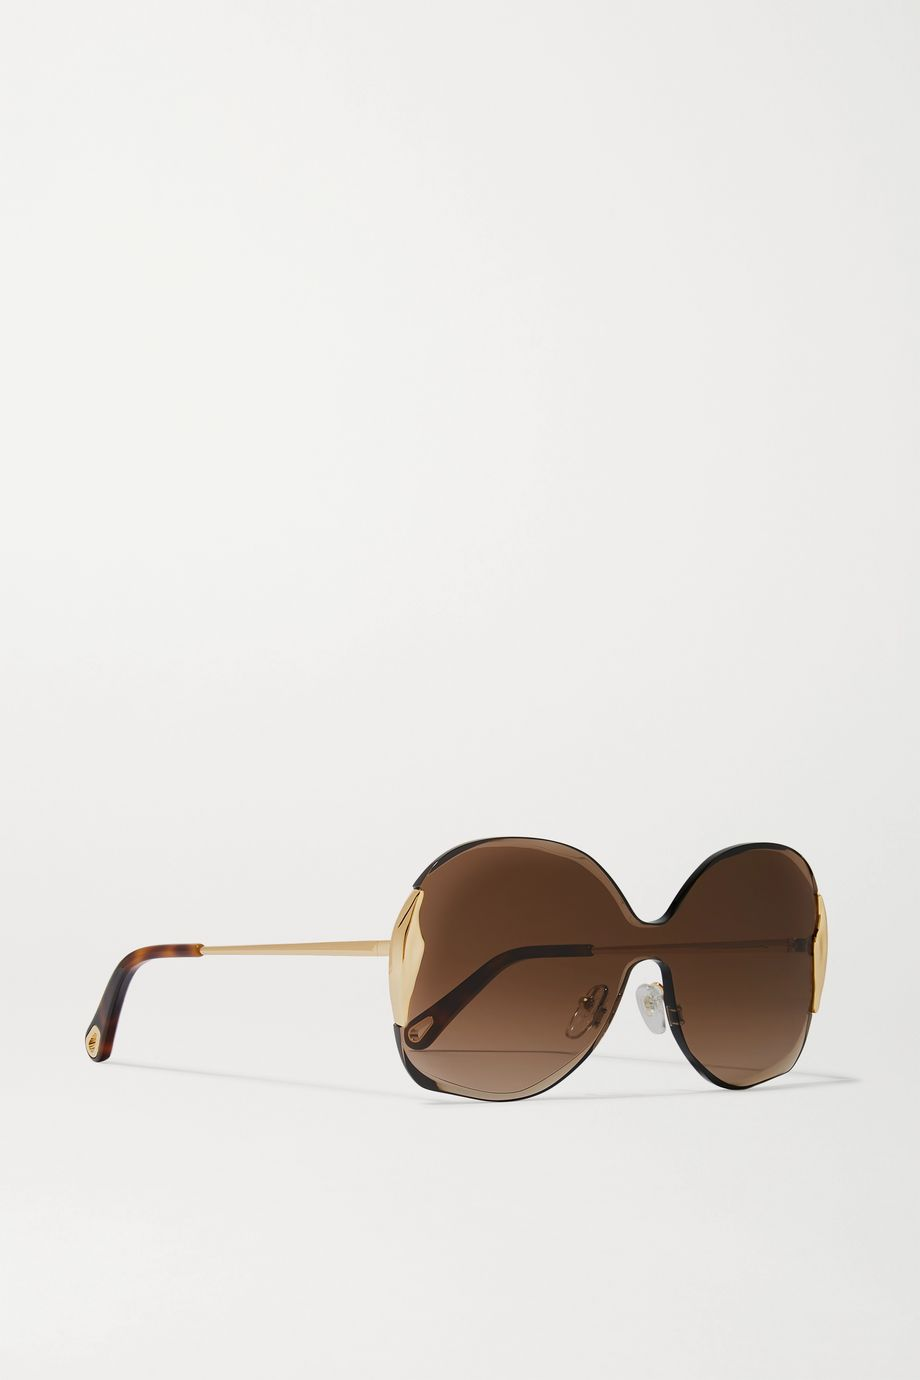 Chloé Curtis square-frame gold-tone and tortoiseshell acetate sunglasses